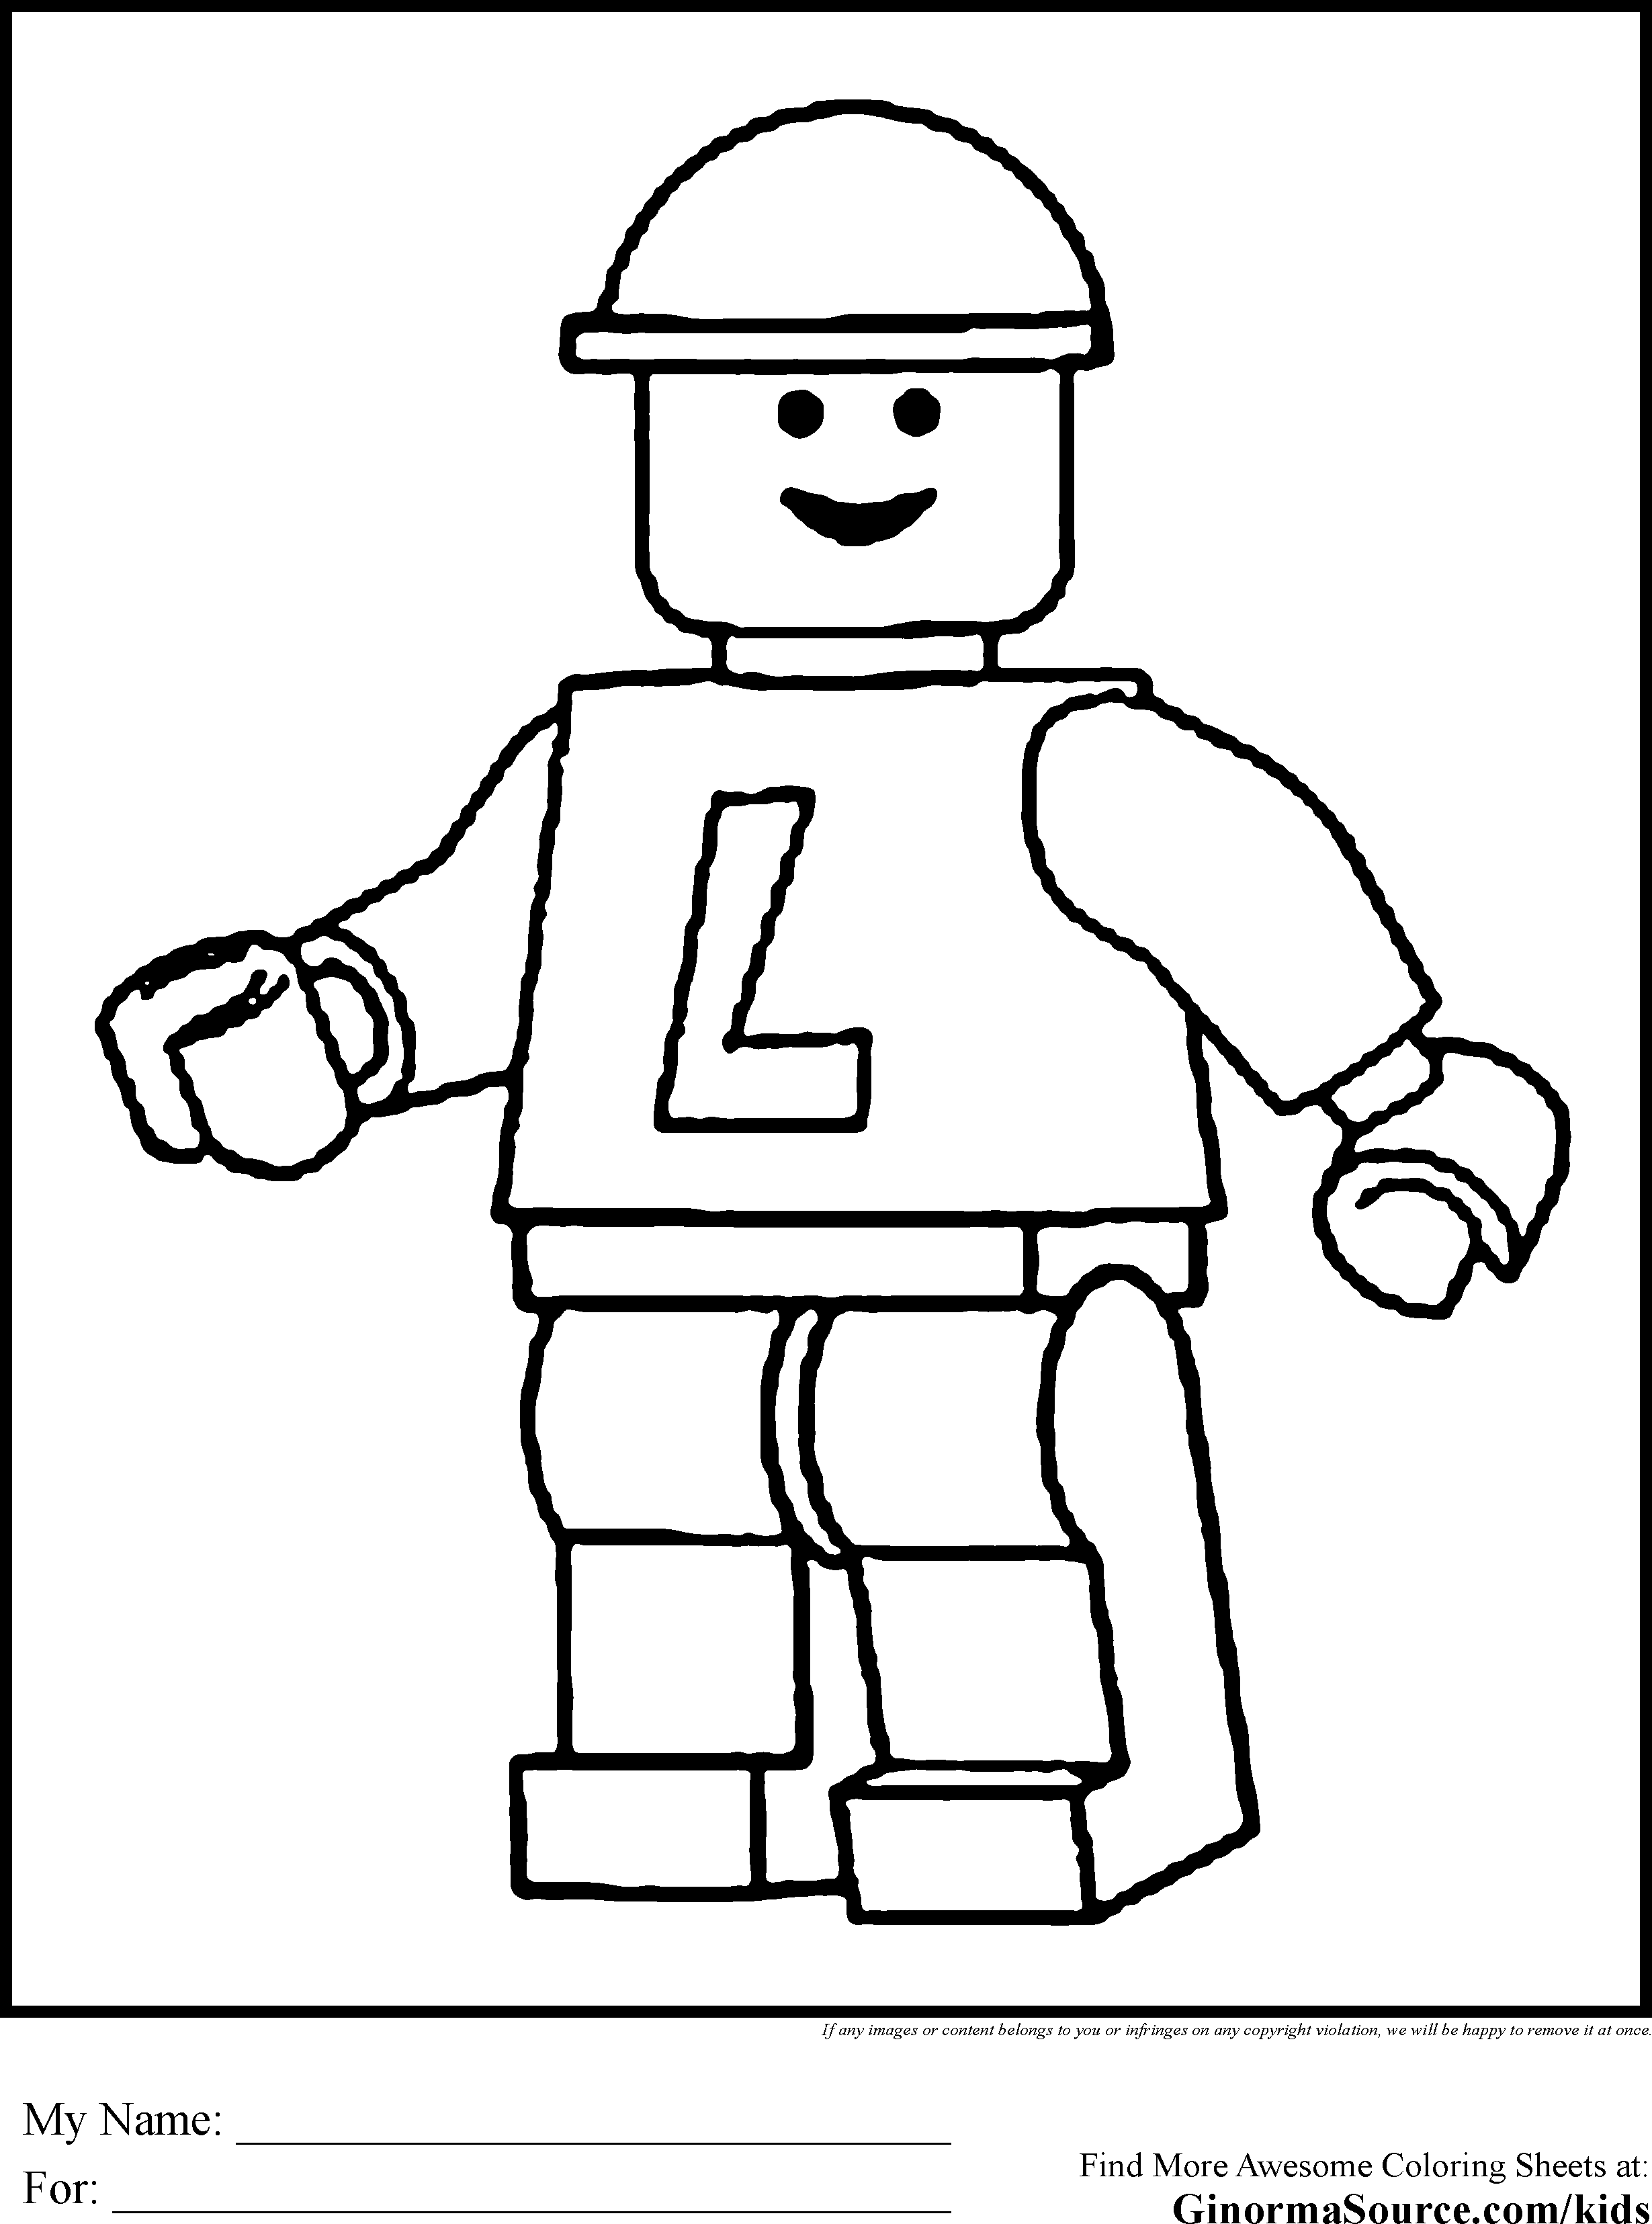 lego man printable 14 images of draw a lego person template geldfritznet man printable lego